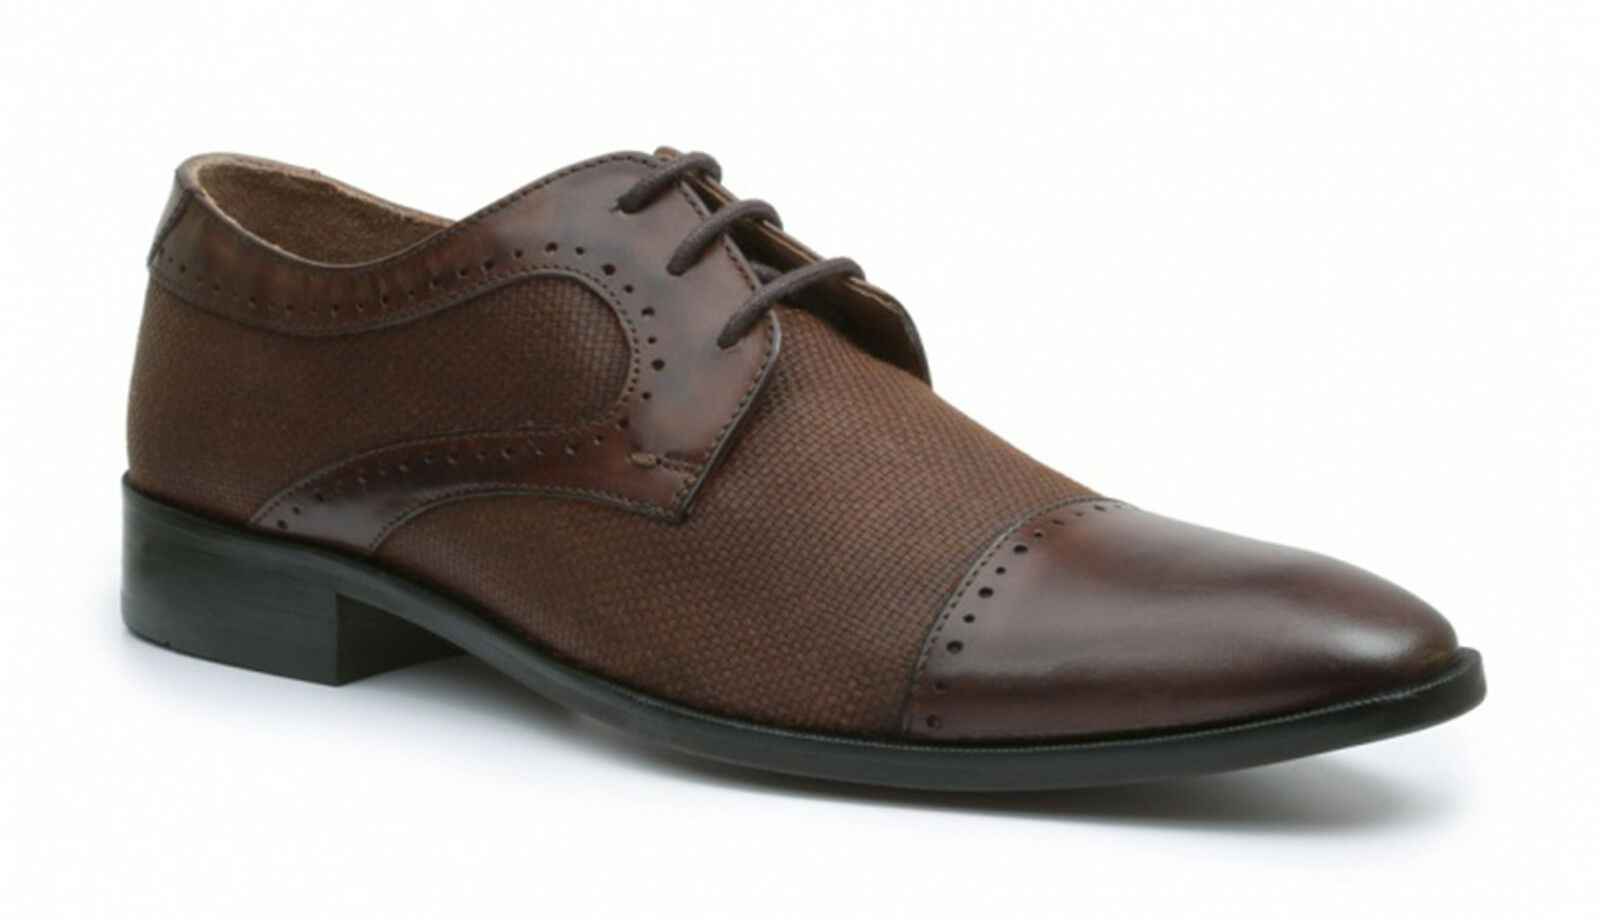 Giorgio Brutini Daily Brown Pelle And Canvas Construction Cap Toe Dress Shoes